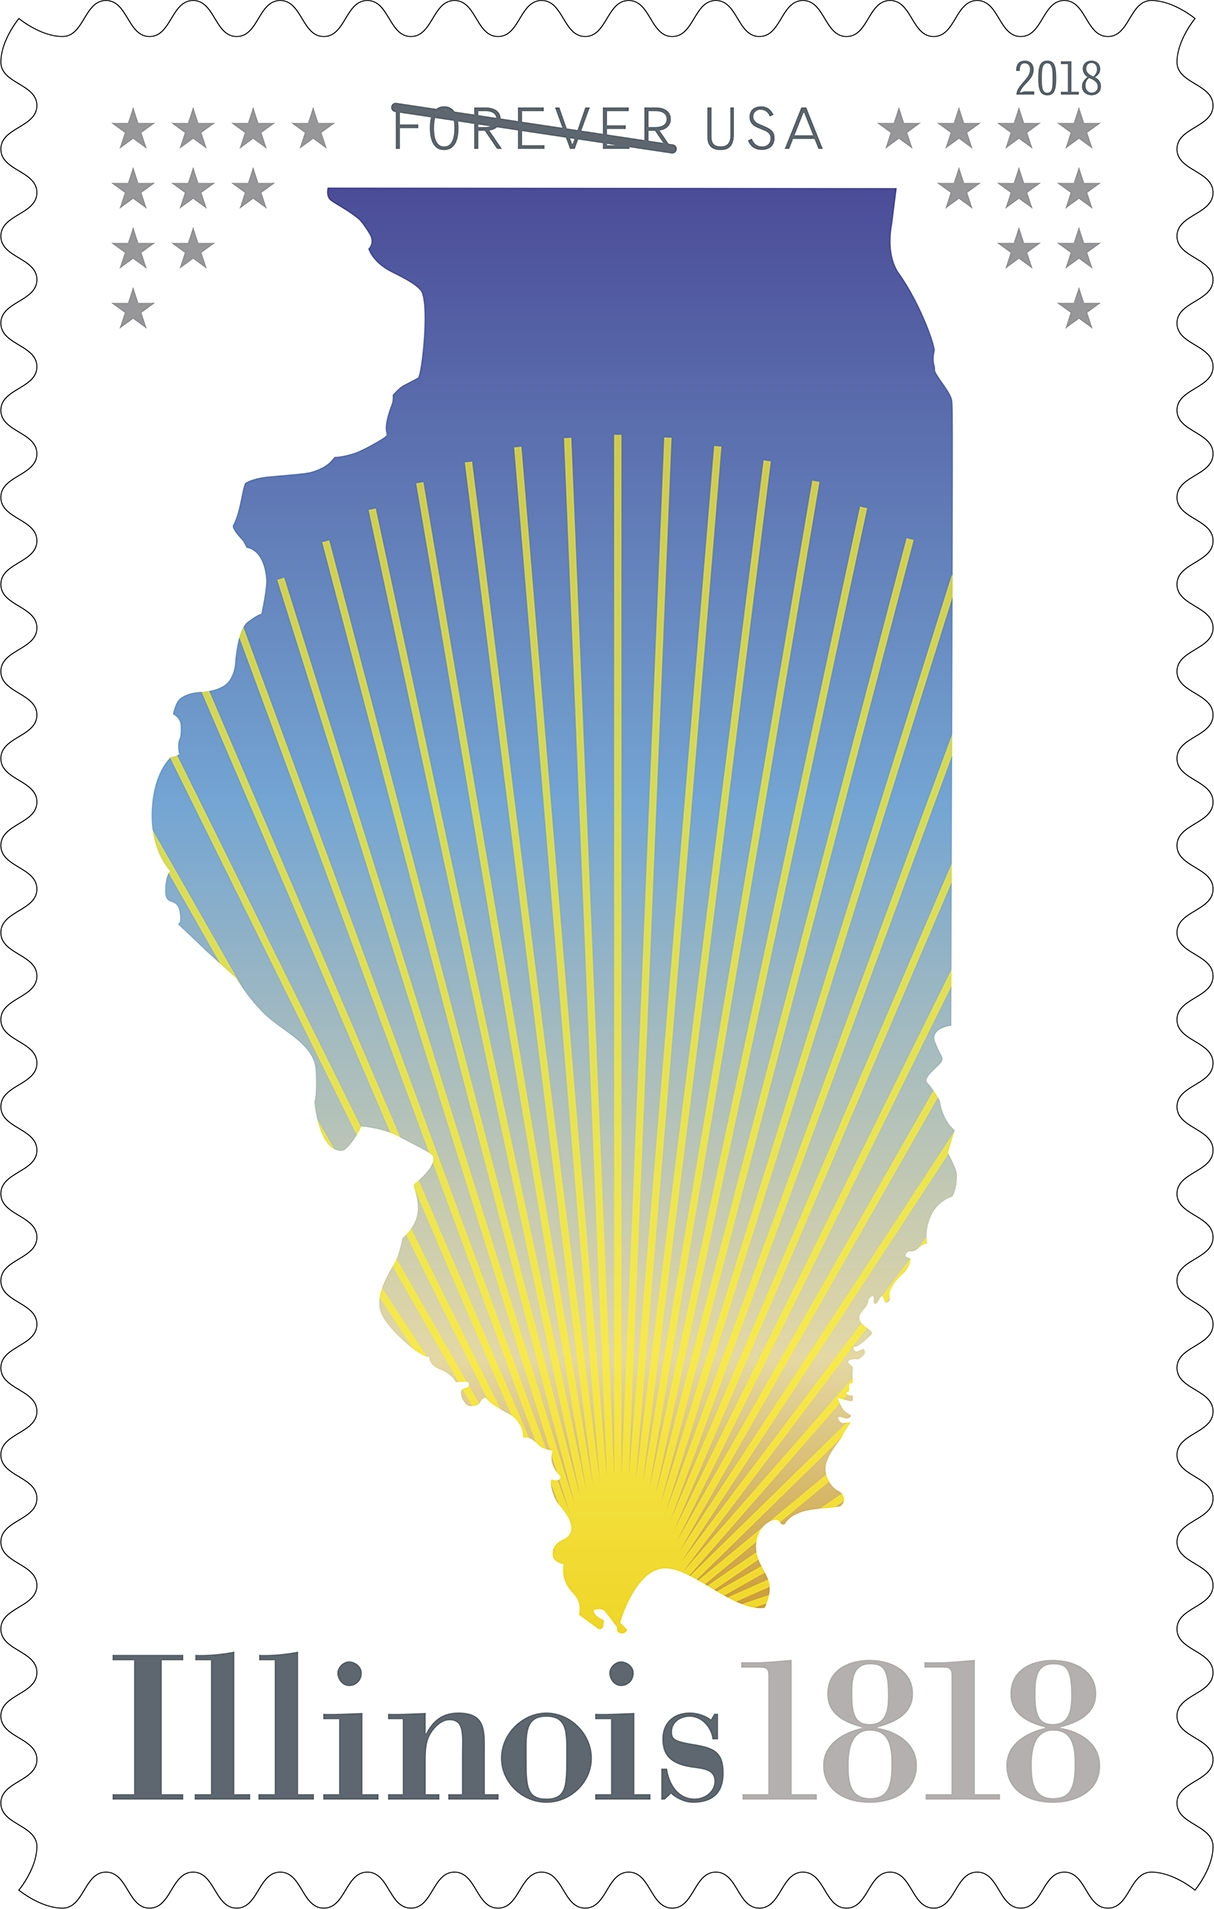 Illinois Statehood (Statehood series): This stamp celebrates the 200th anniversary of Illinois statehood. Known as the Prairie State, Illinois became the 21st state of the union on Dec. 3, 1818. (USPS)